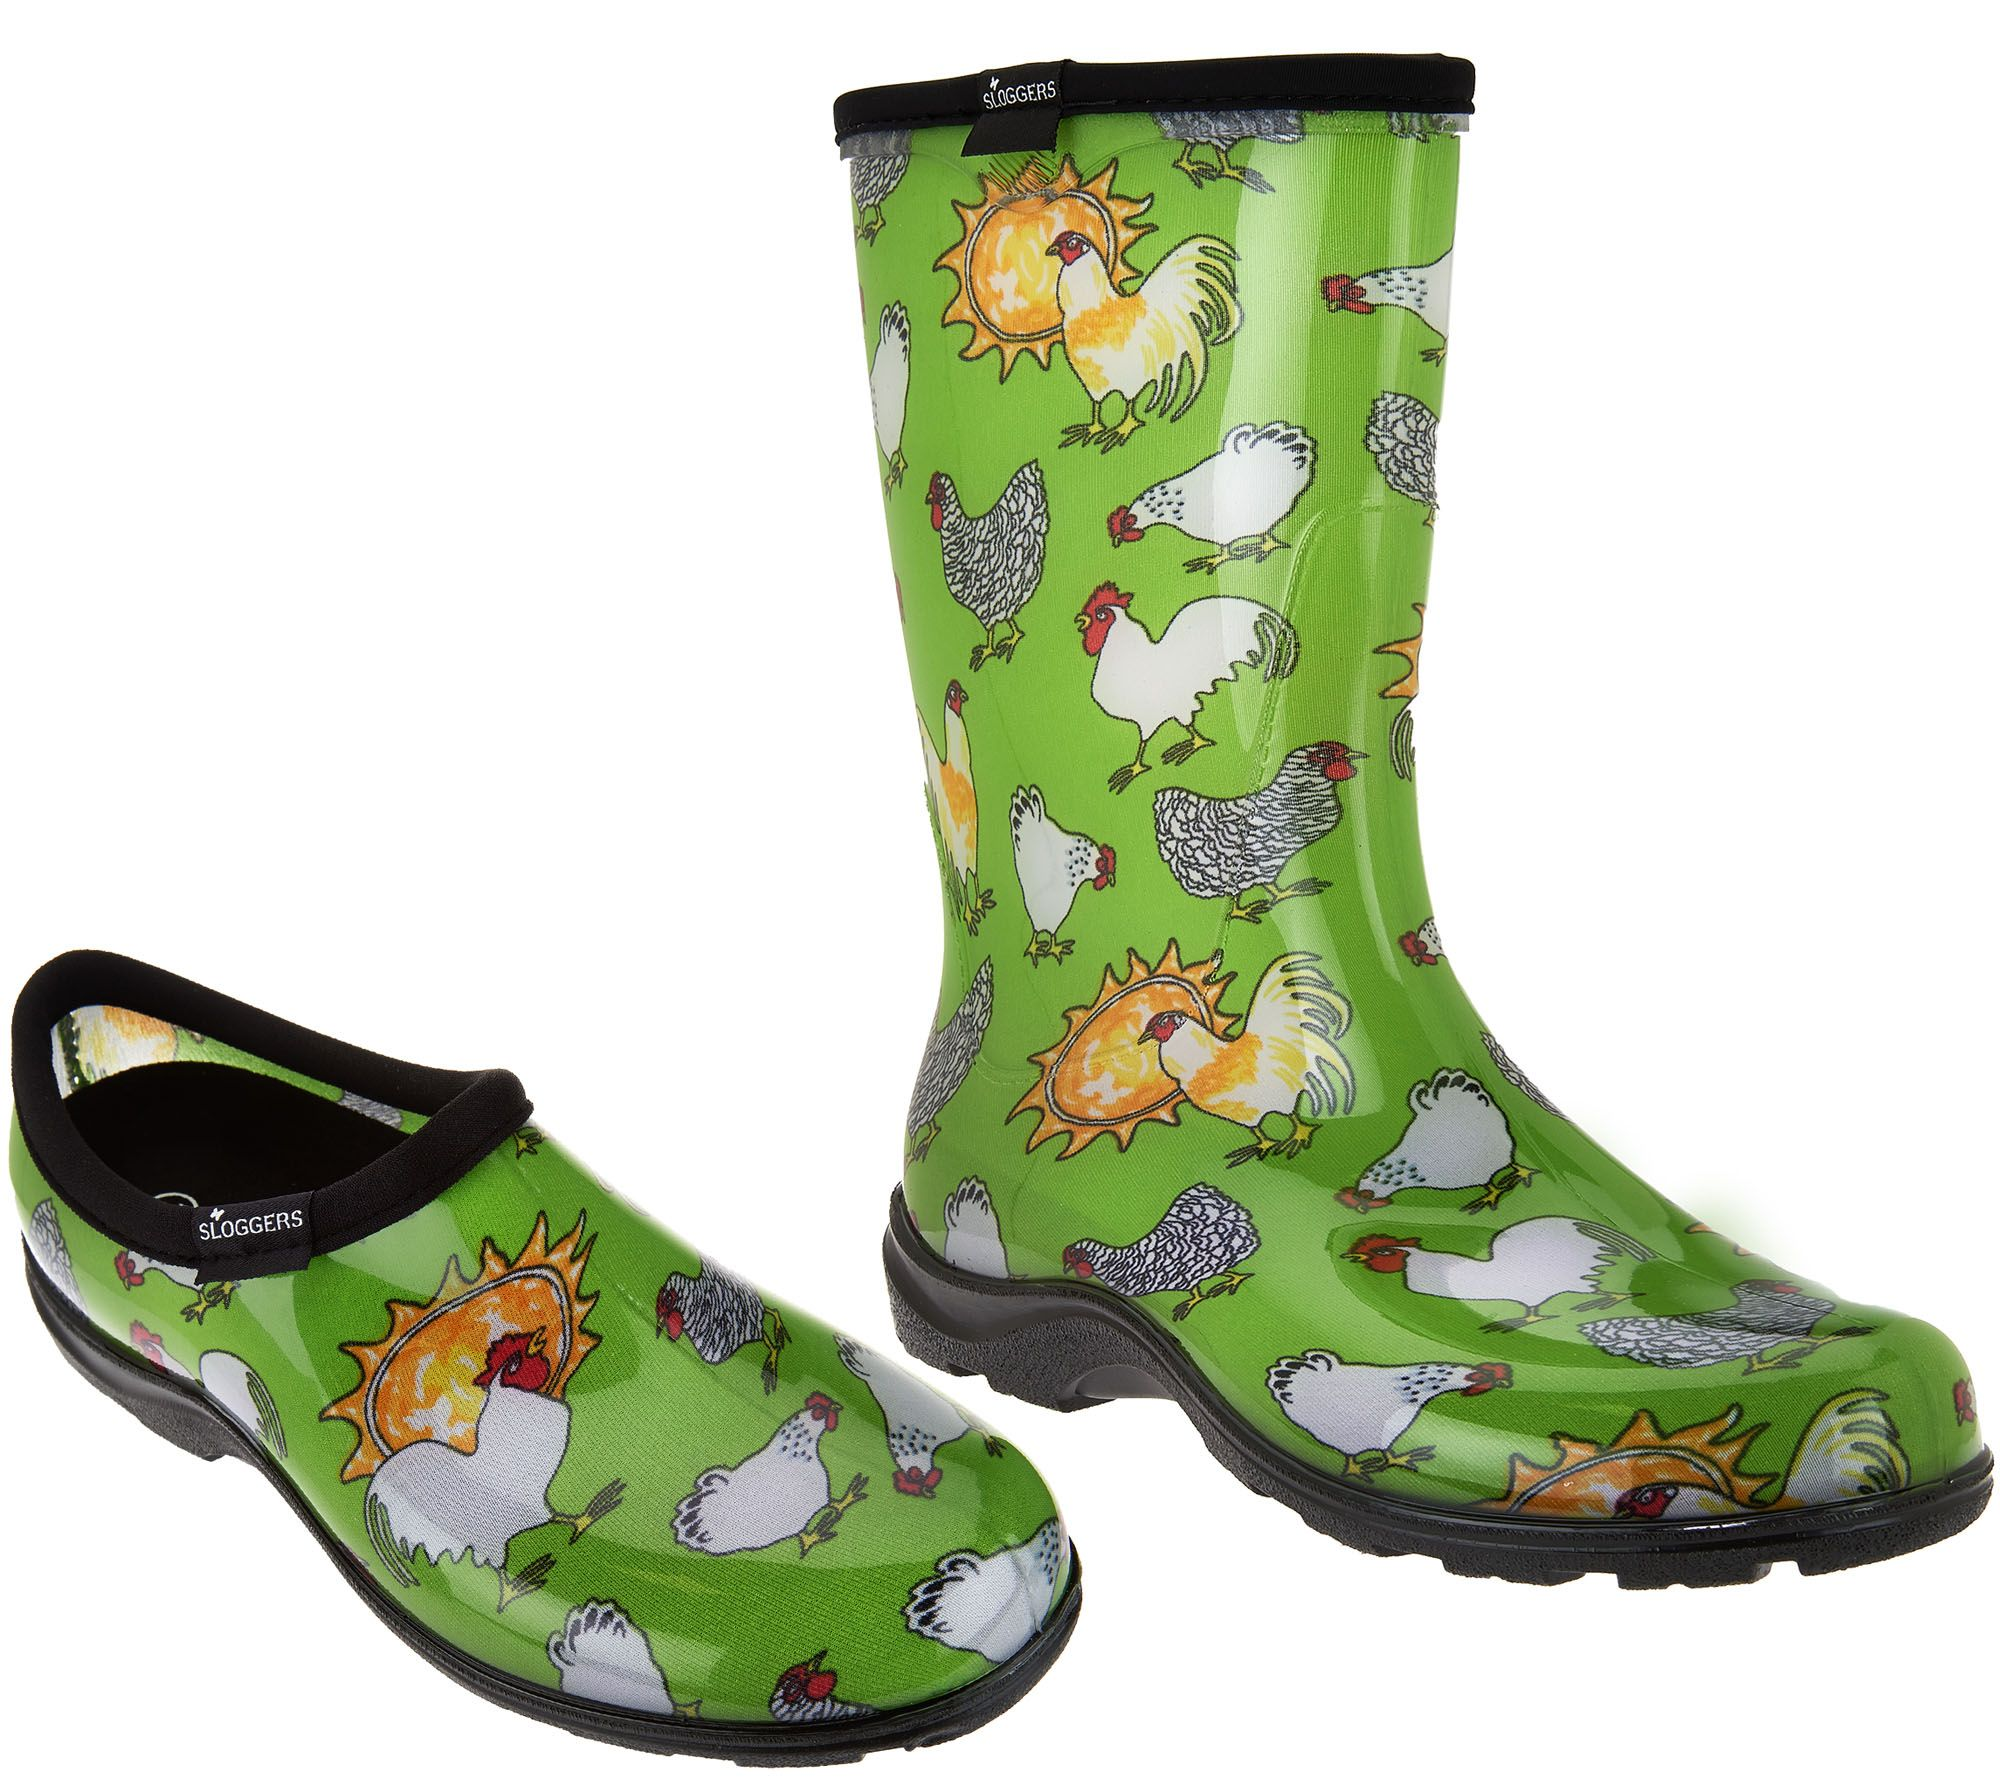 Sloggers Chickens And Suns Garden Shoes Or Boots